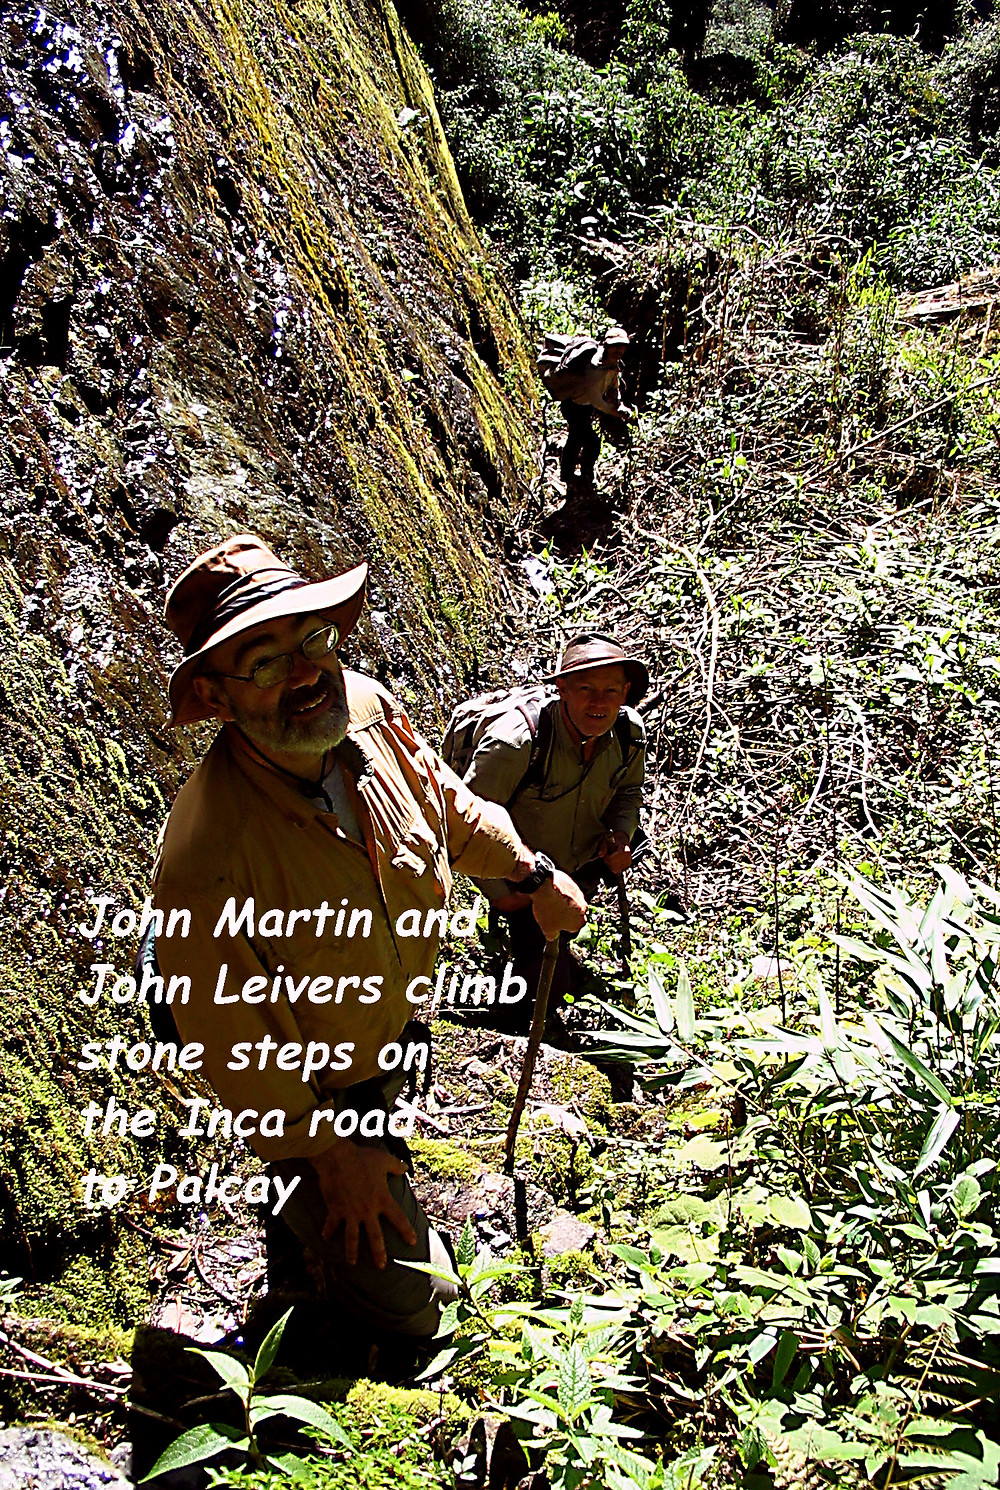 John Martin and John Leivers on the Inca trail to Palcay from Machu Picchu